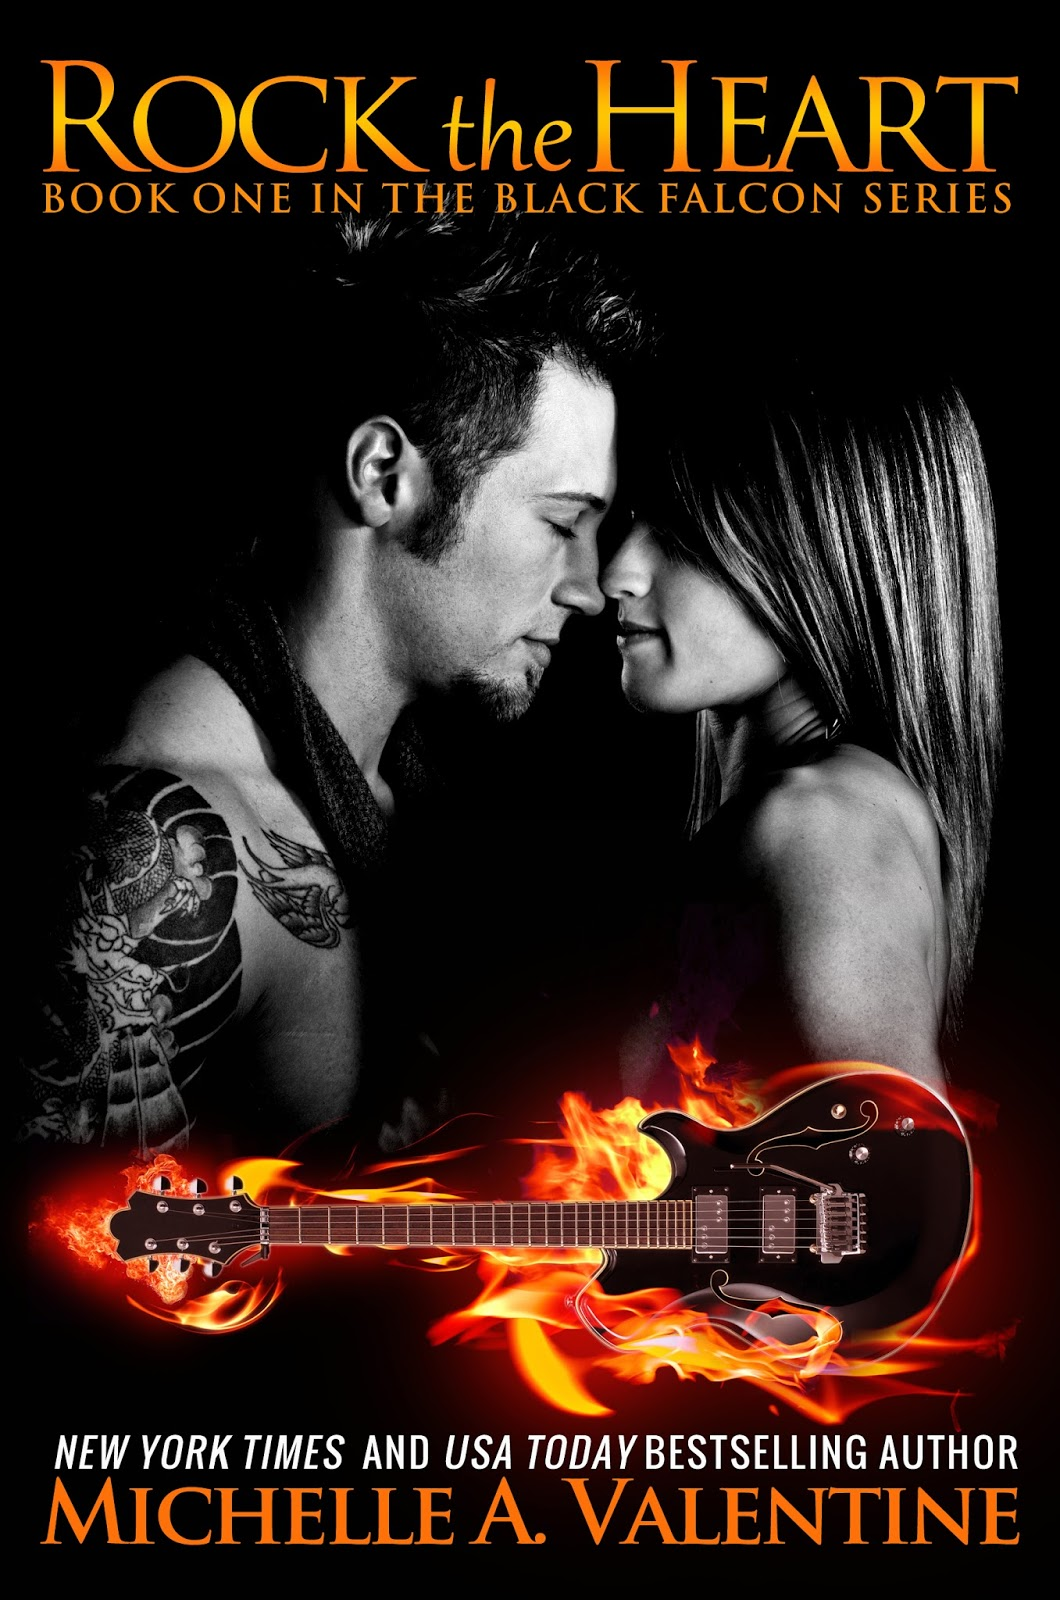 http://www.amazon.com/Rock-Heart-Michelle-Valentine-ebook/dp/B00A86JP4S/ref=sr_1_1?s=books&ie=UTF8&qid=1395161804&sr=1-1&keywords=Rock+the+Heart